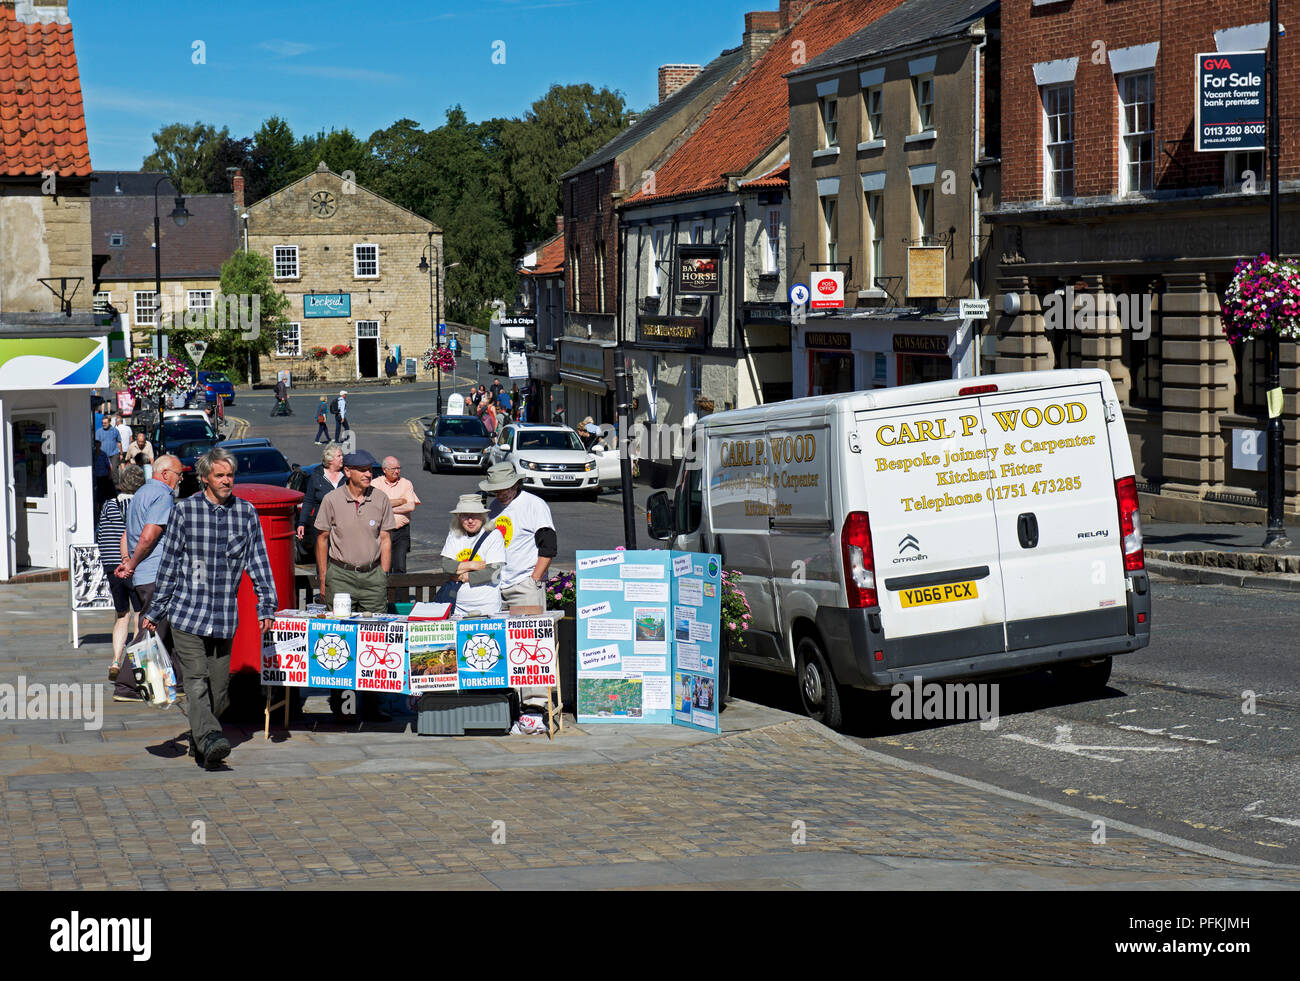 Anti-fracking protest, Pickering town,North Yorkshire, England UK - Stock Image